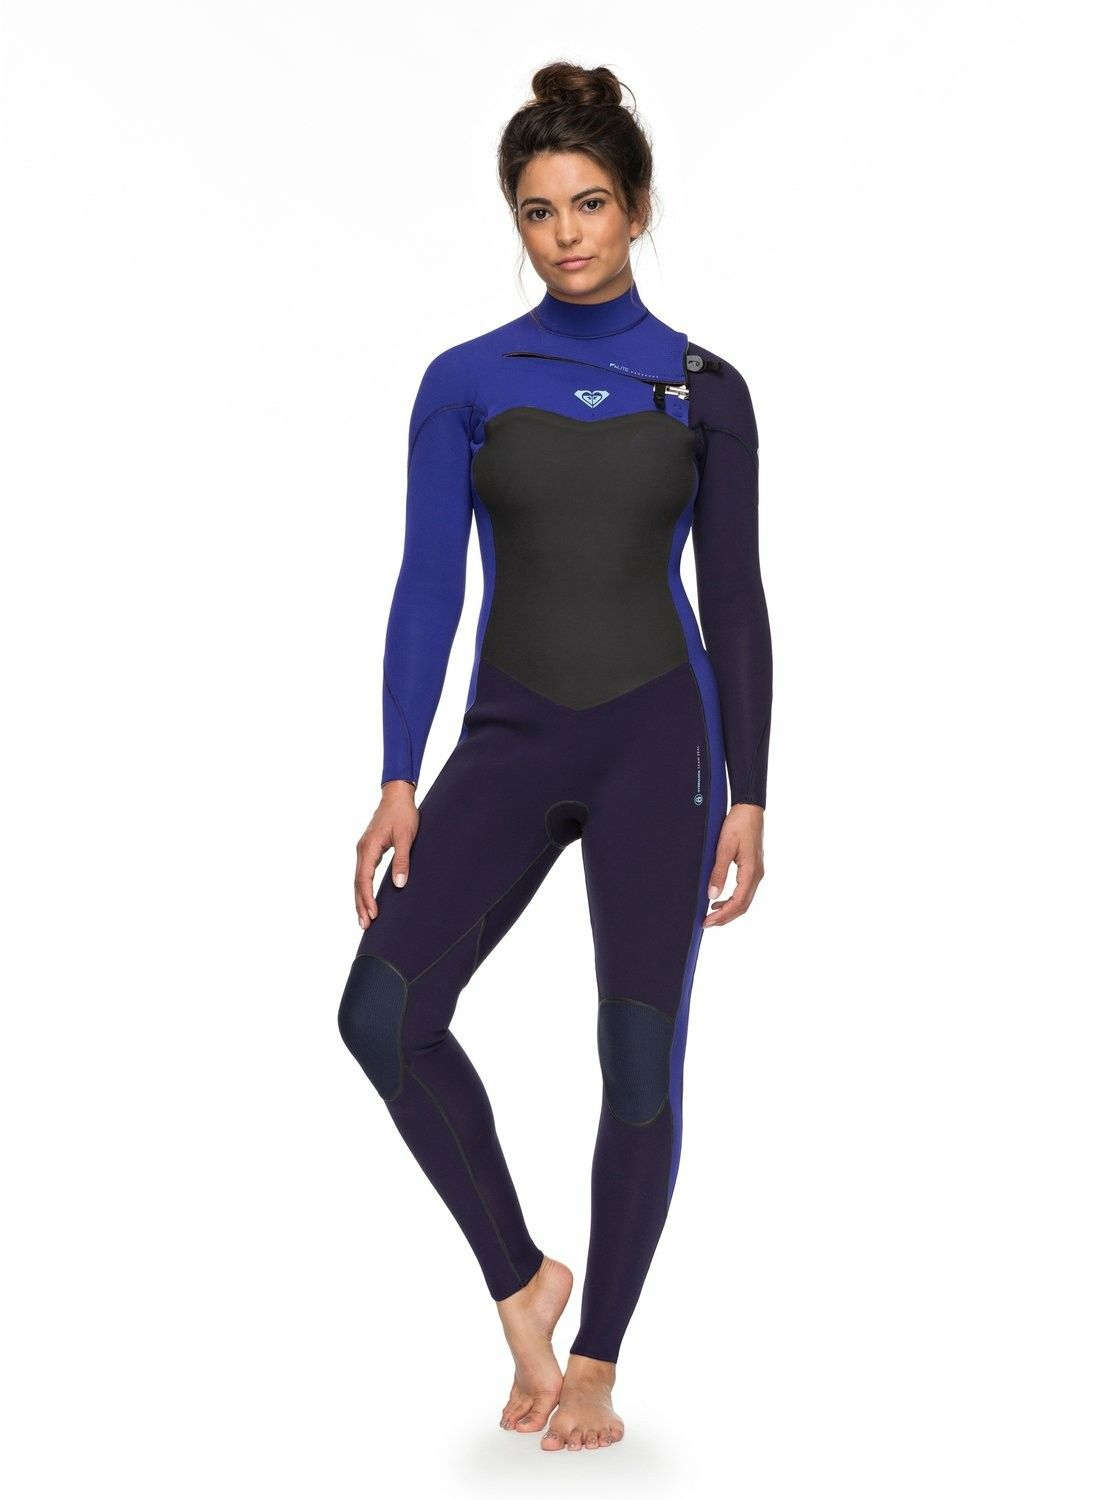 e2d4966afd1a2a Pin by Dre on Wetsuit Ladies